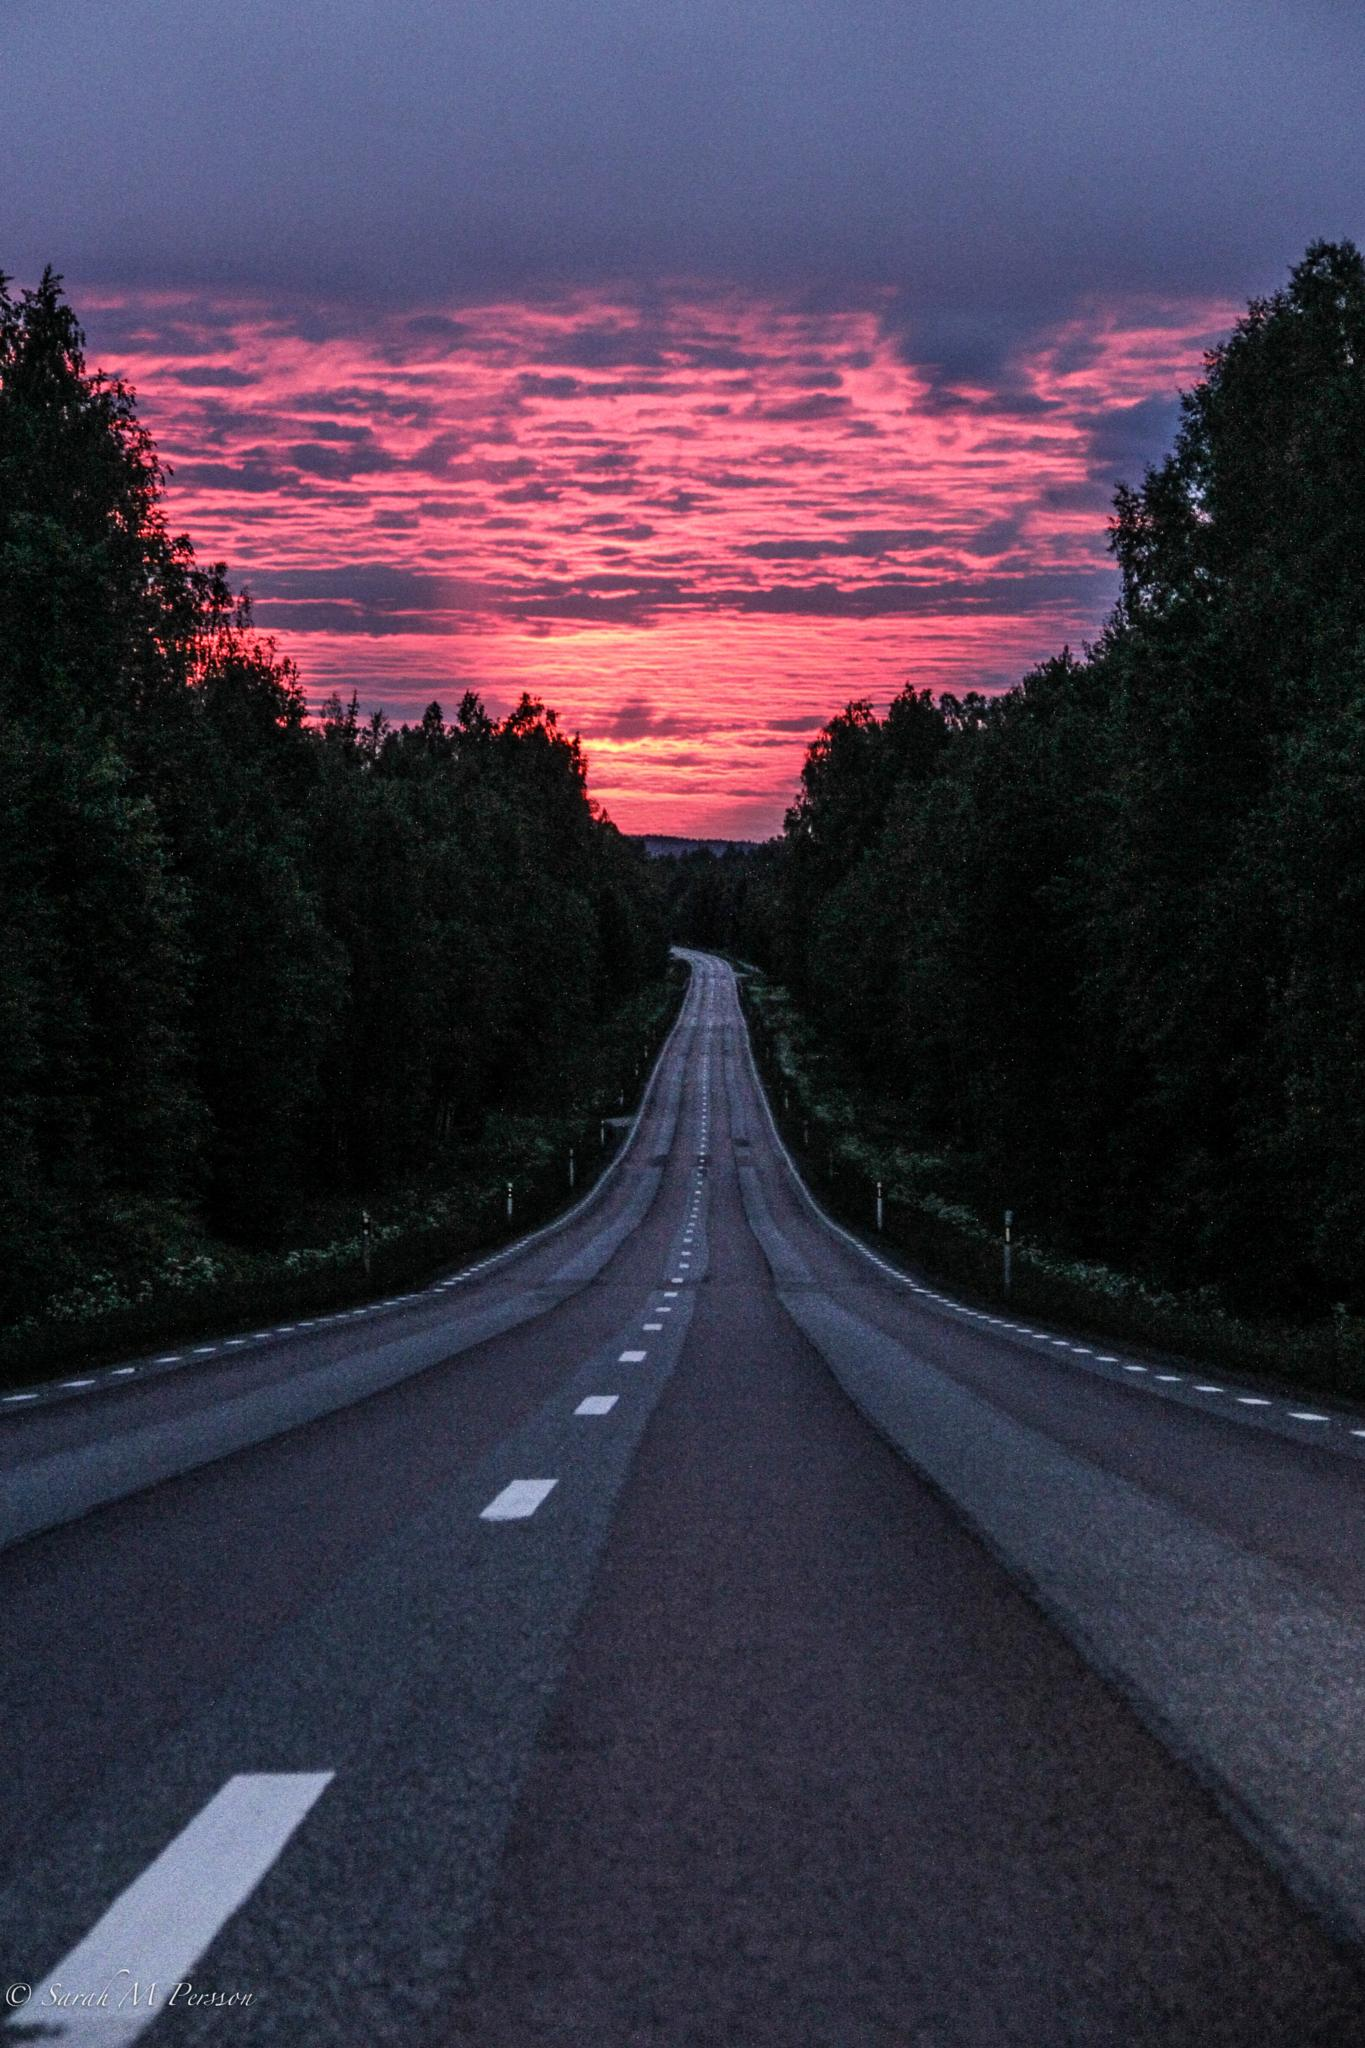 Midsummer night road by Sarah M Persson